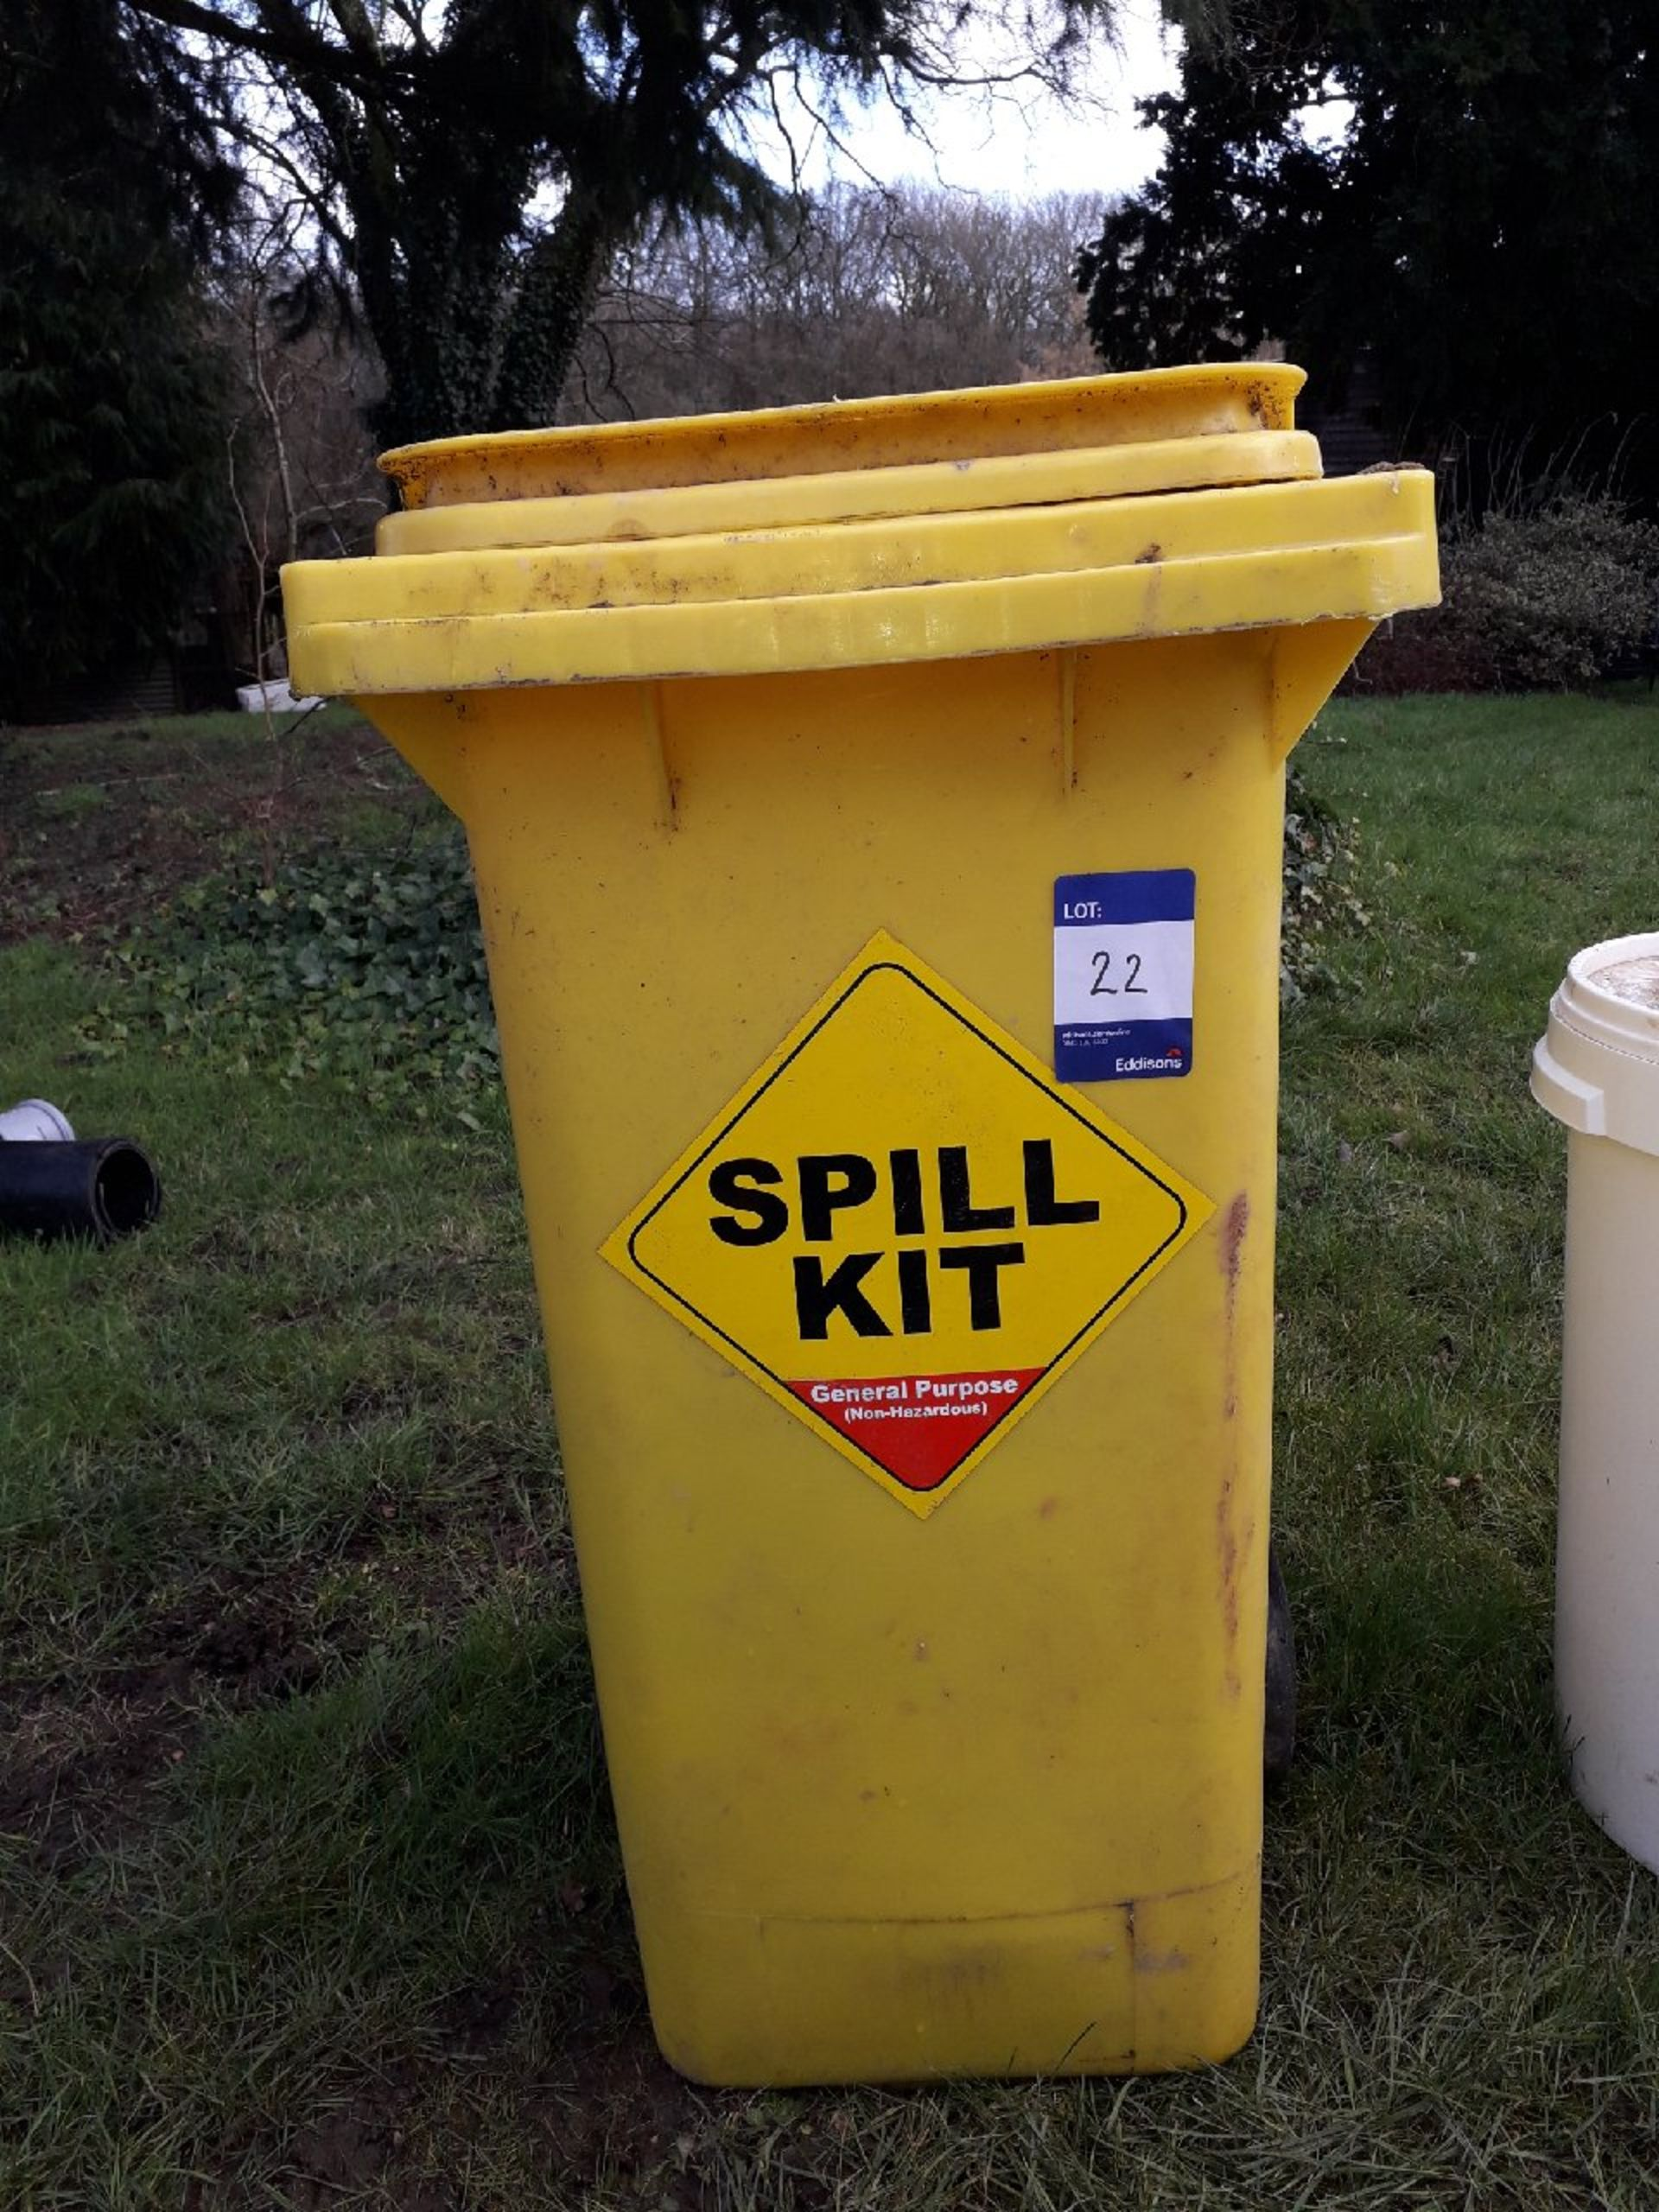 Lot 22 - Wheelie bin general purpose (non hazardous) spill kit. (Please note: Viewing is by appointment only.